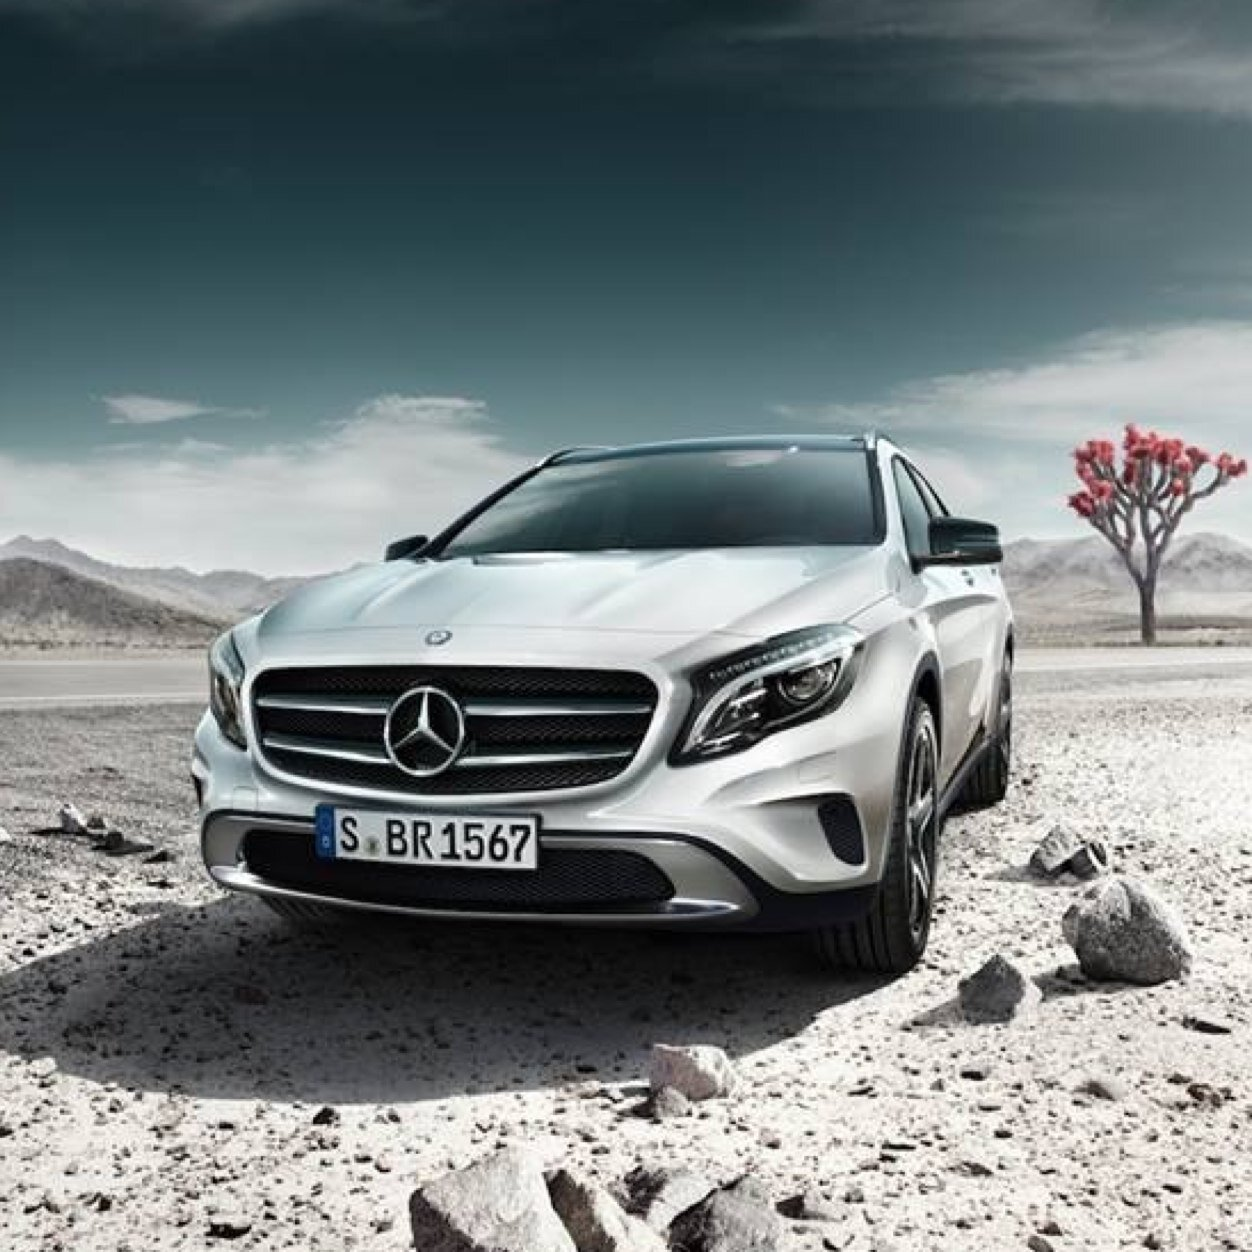 Mercedes benz now mercedesnow twitter for Mercedes benz twitter